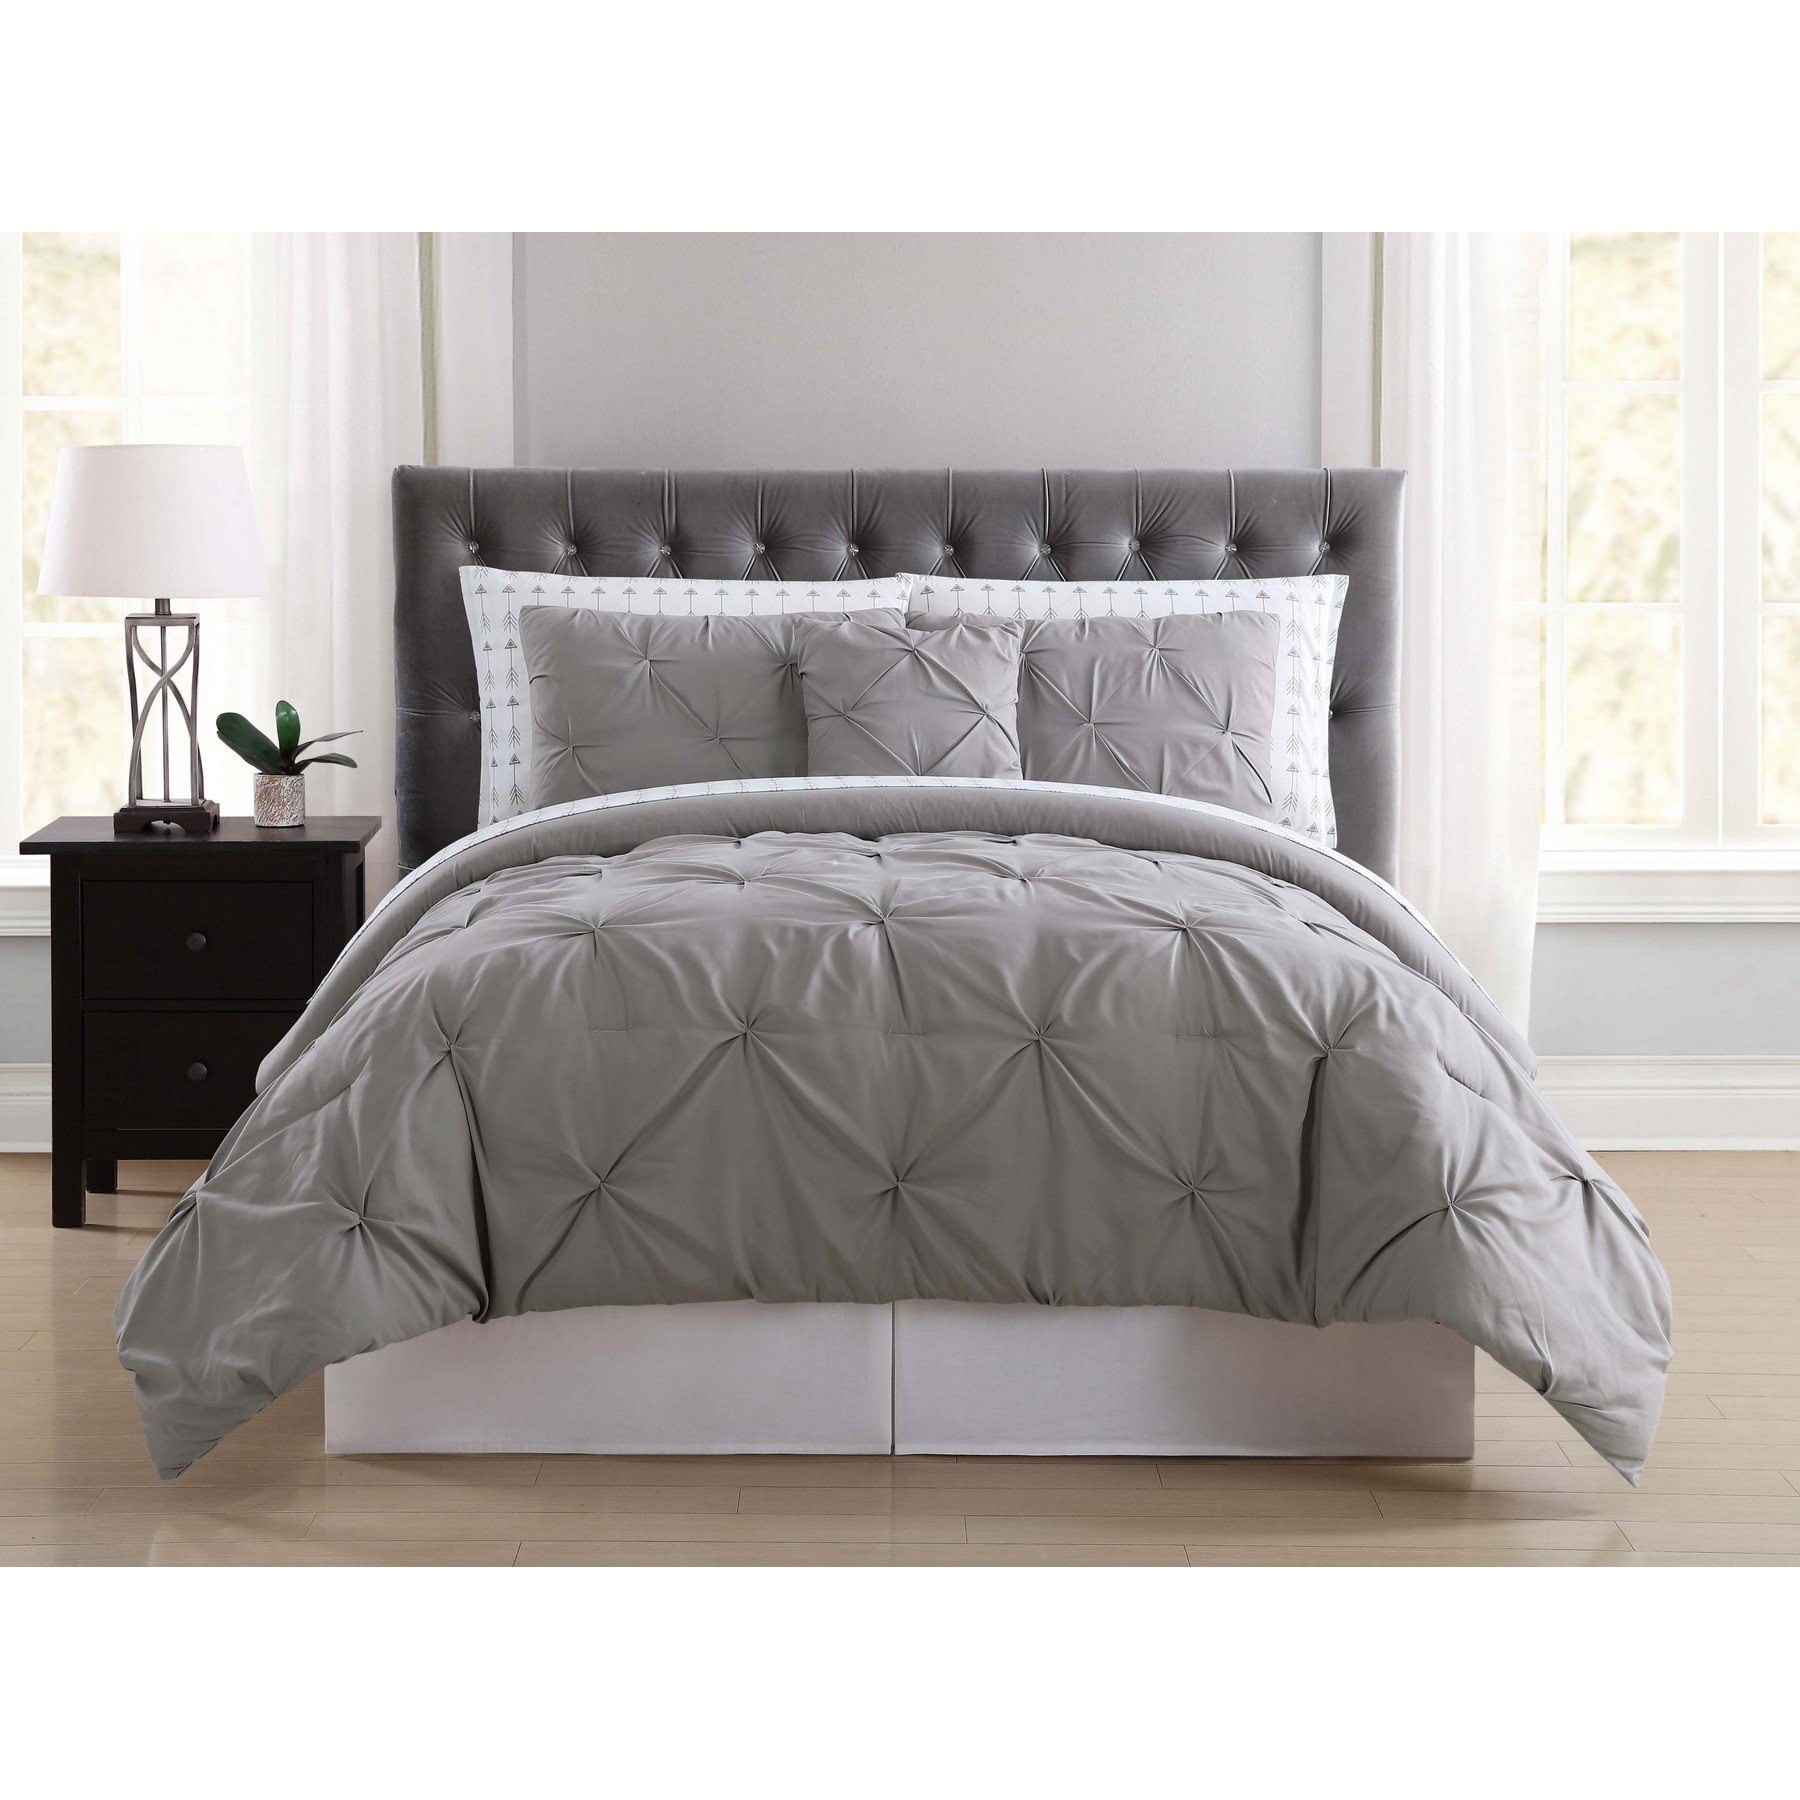 Truly Soft Everyday BIB1969GYKAR-32 Pleated Bed in a Bag, King, Arrow Grey by Truly Soft Everyday